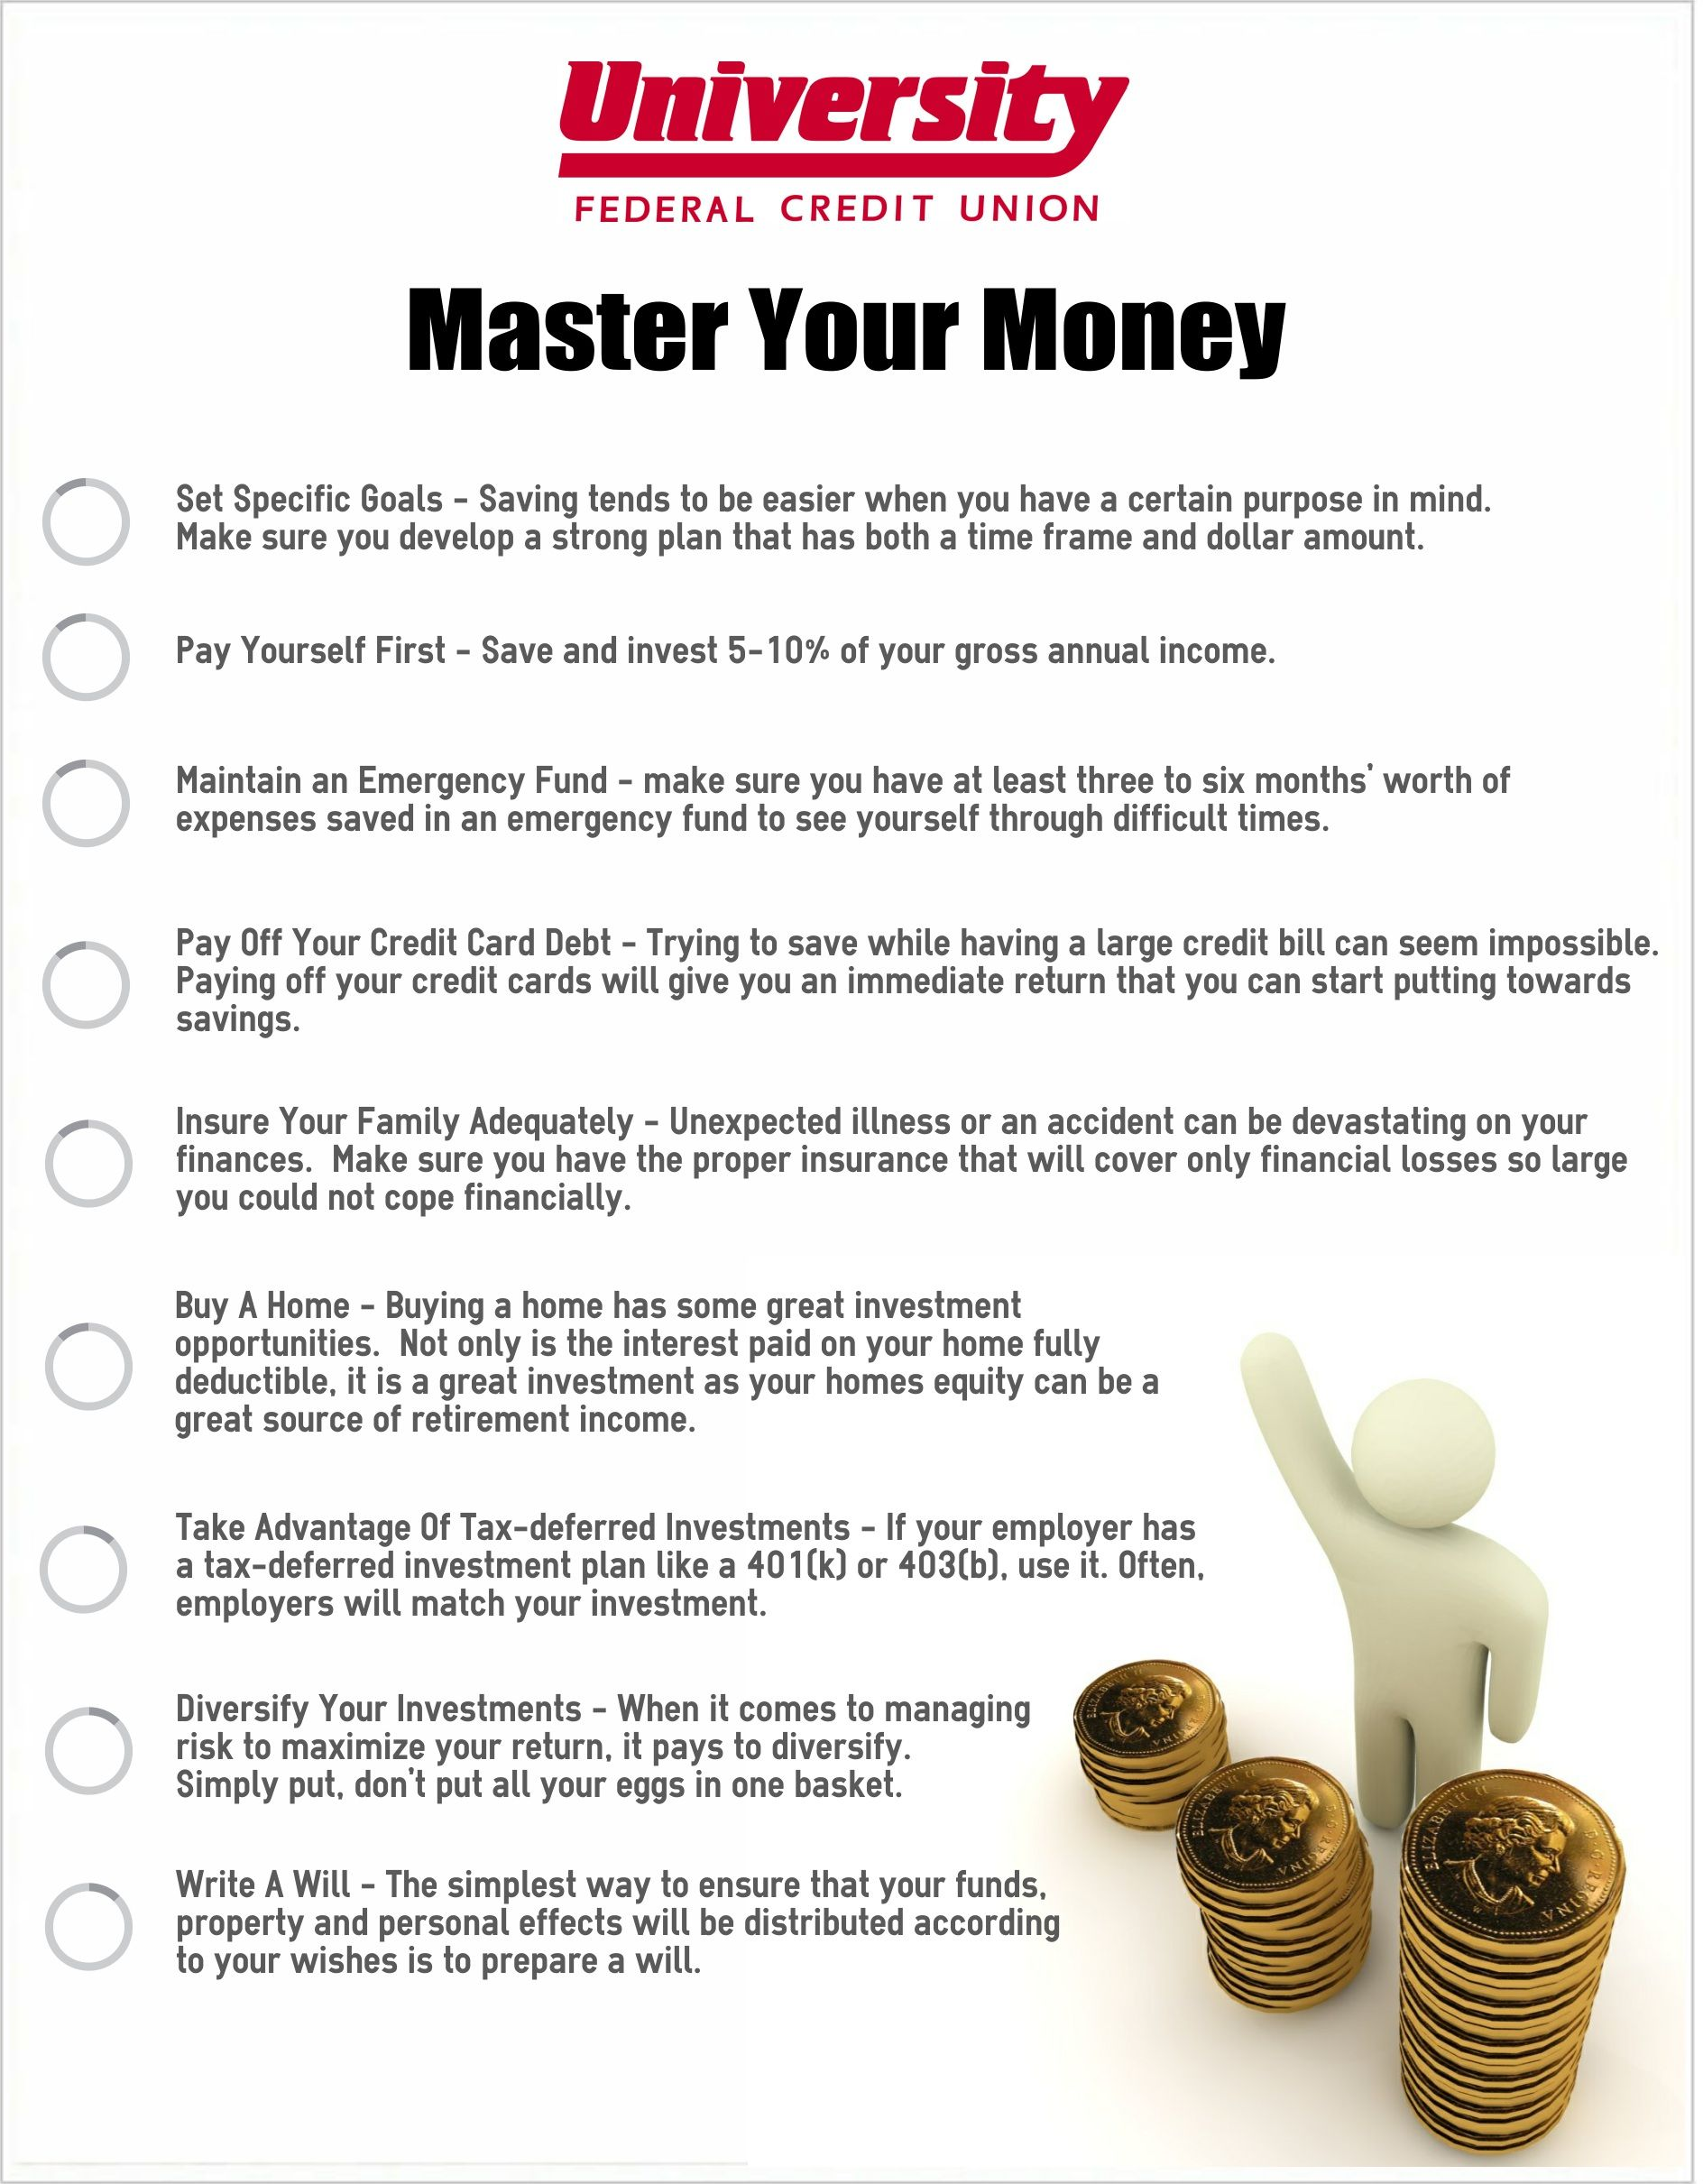 Don't let your money master you! Find out how you can be a